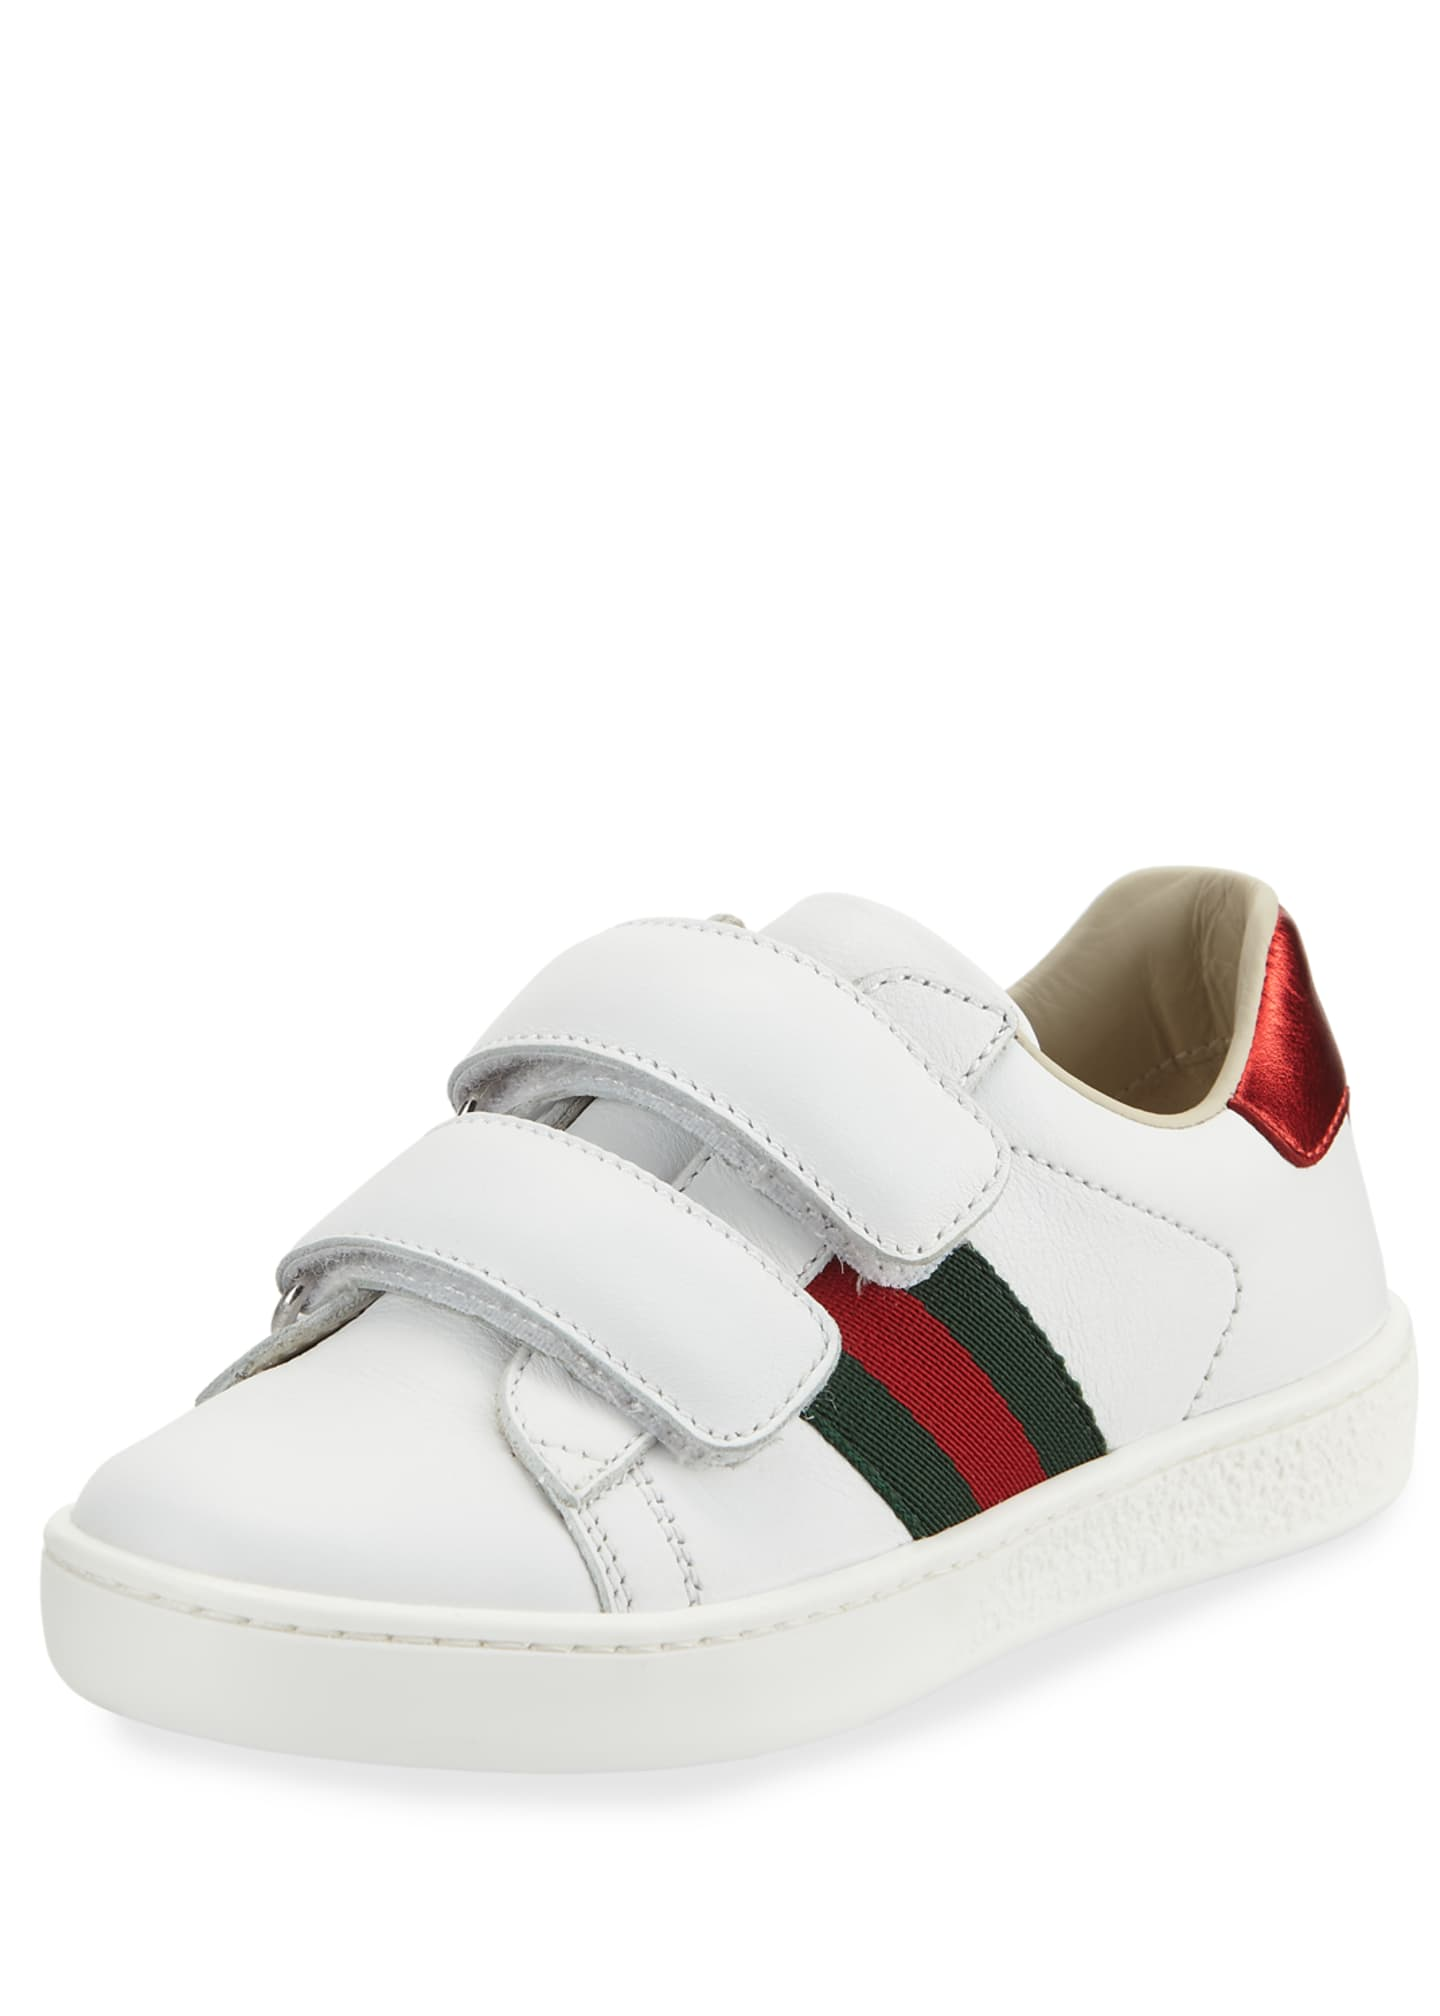 Aceweb new ace web-trim leather sneaker, toddler/kids